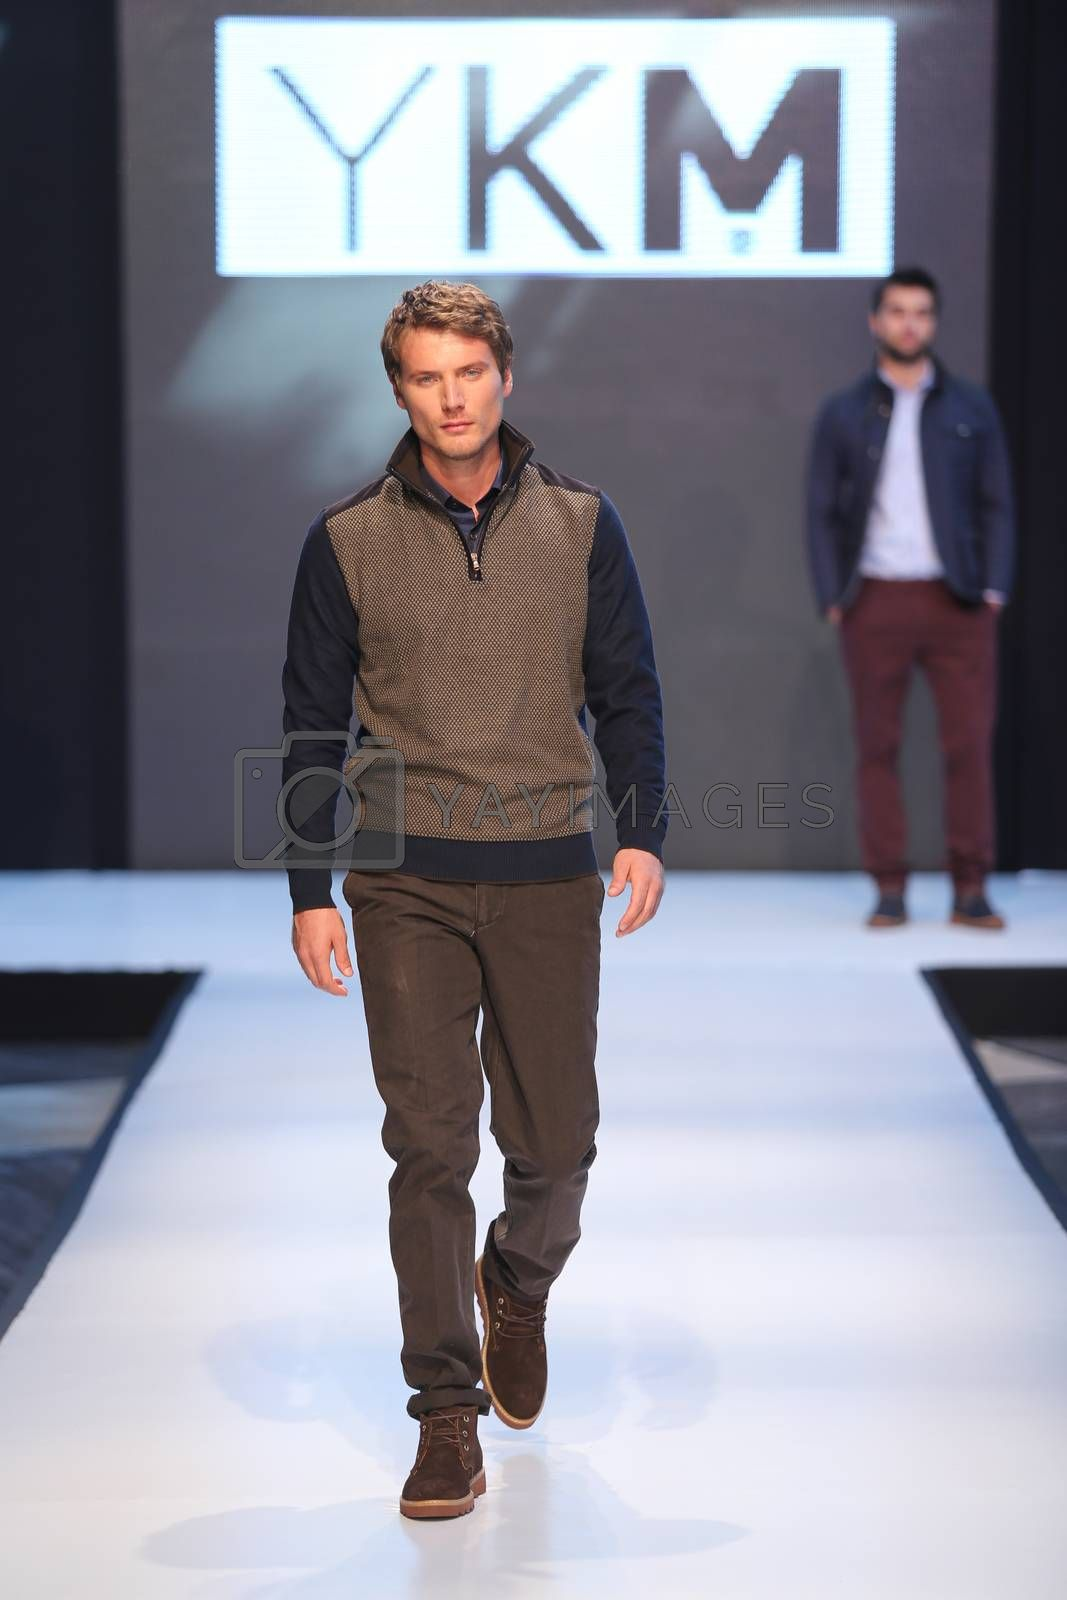 ISTANBUL, TURKEY - OCTOBER 10, 2015: A model showcases one of the latest creations of YKM in Forum Fashion Week